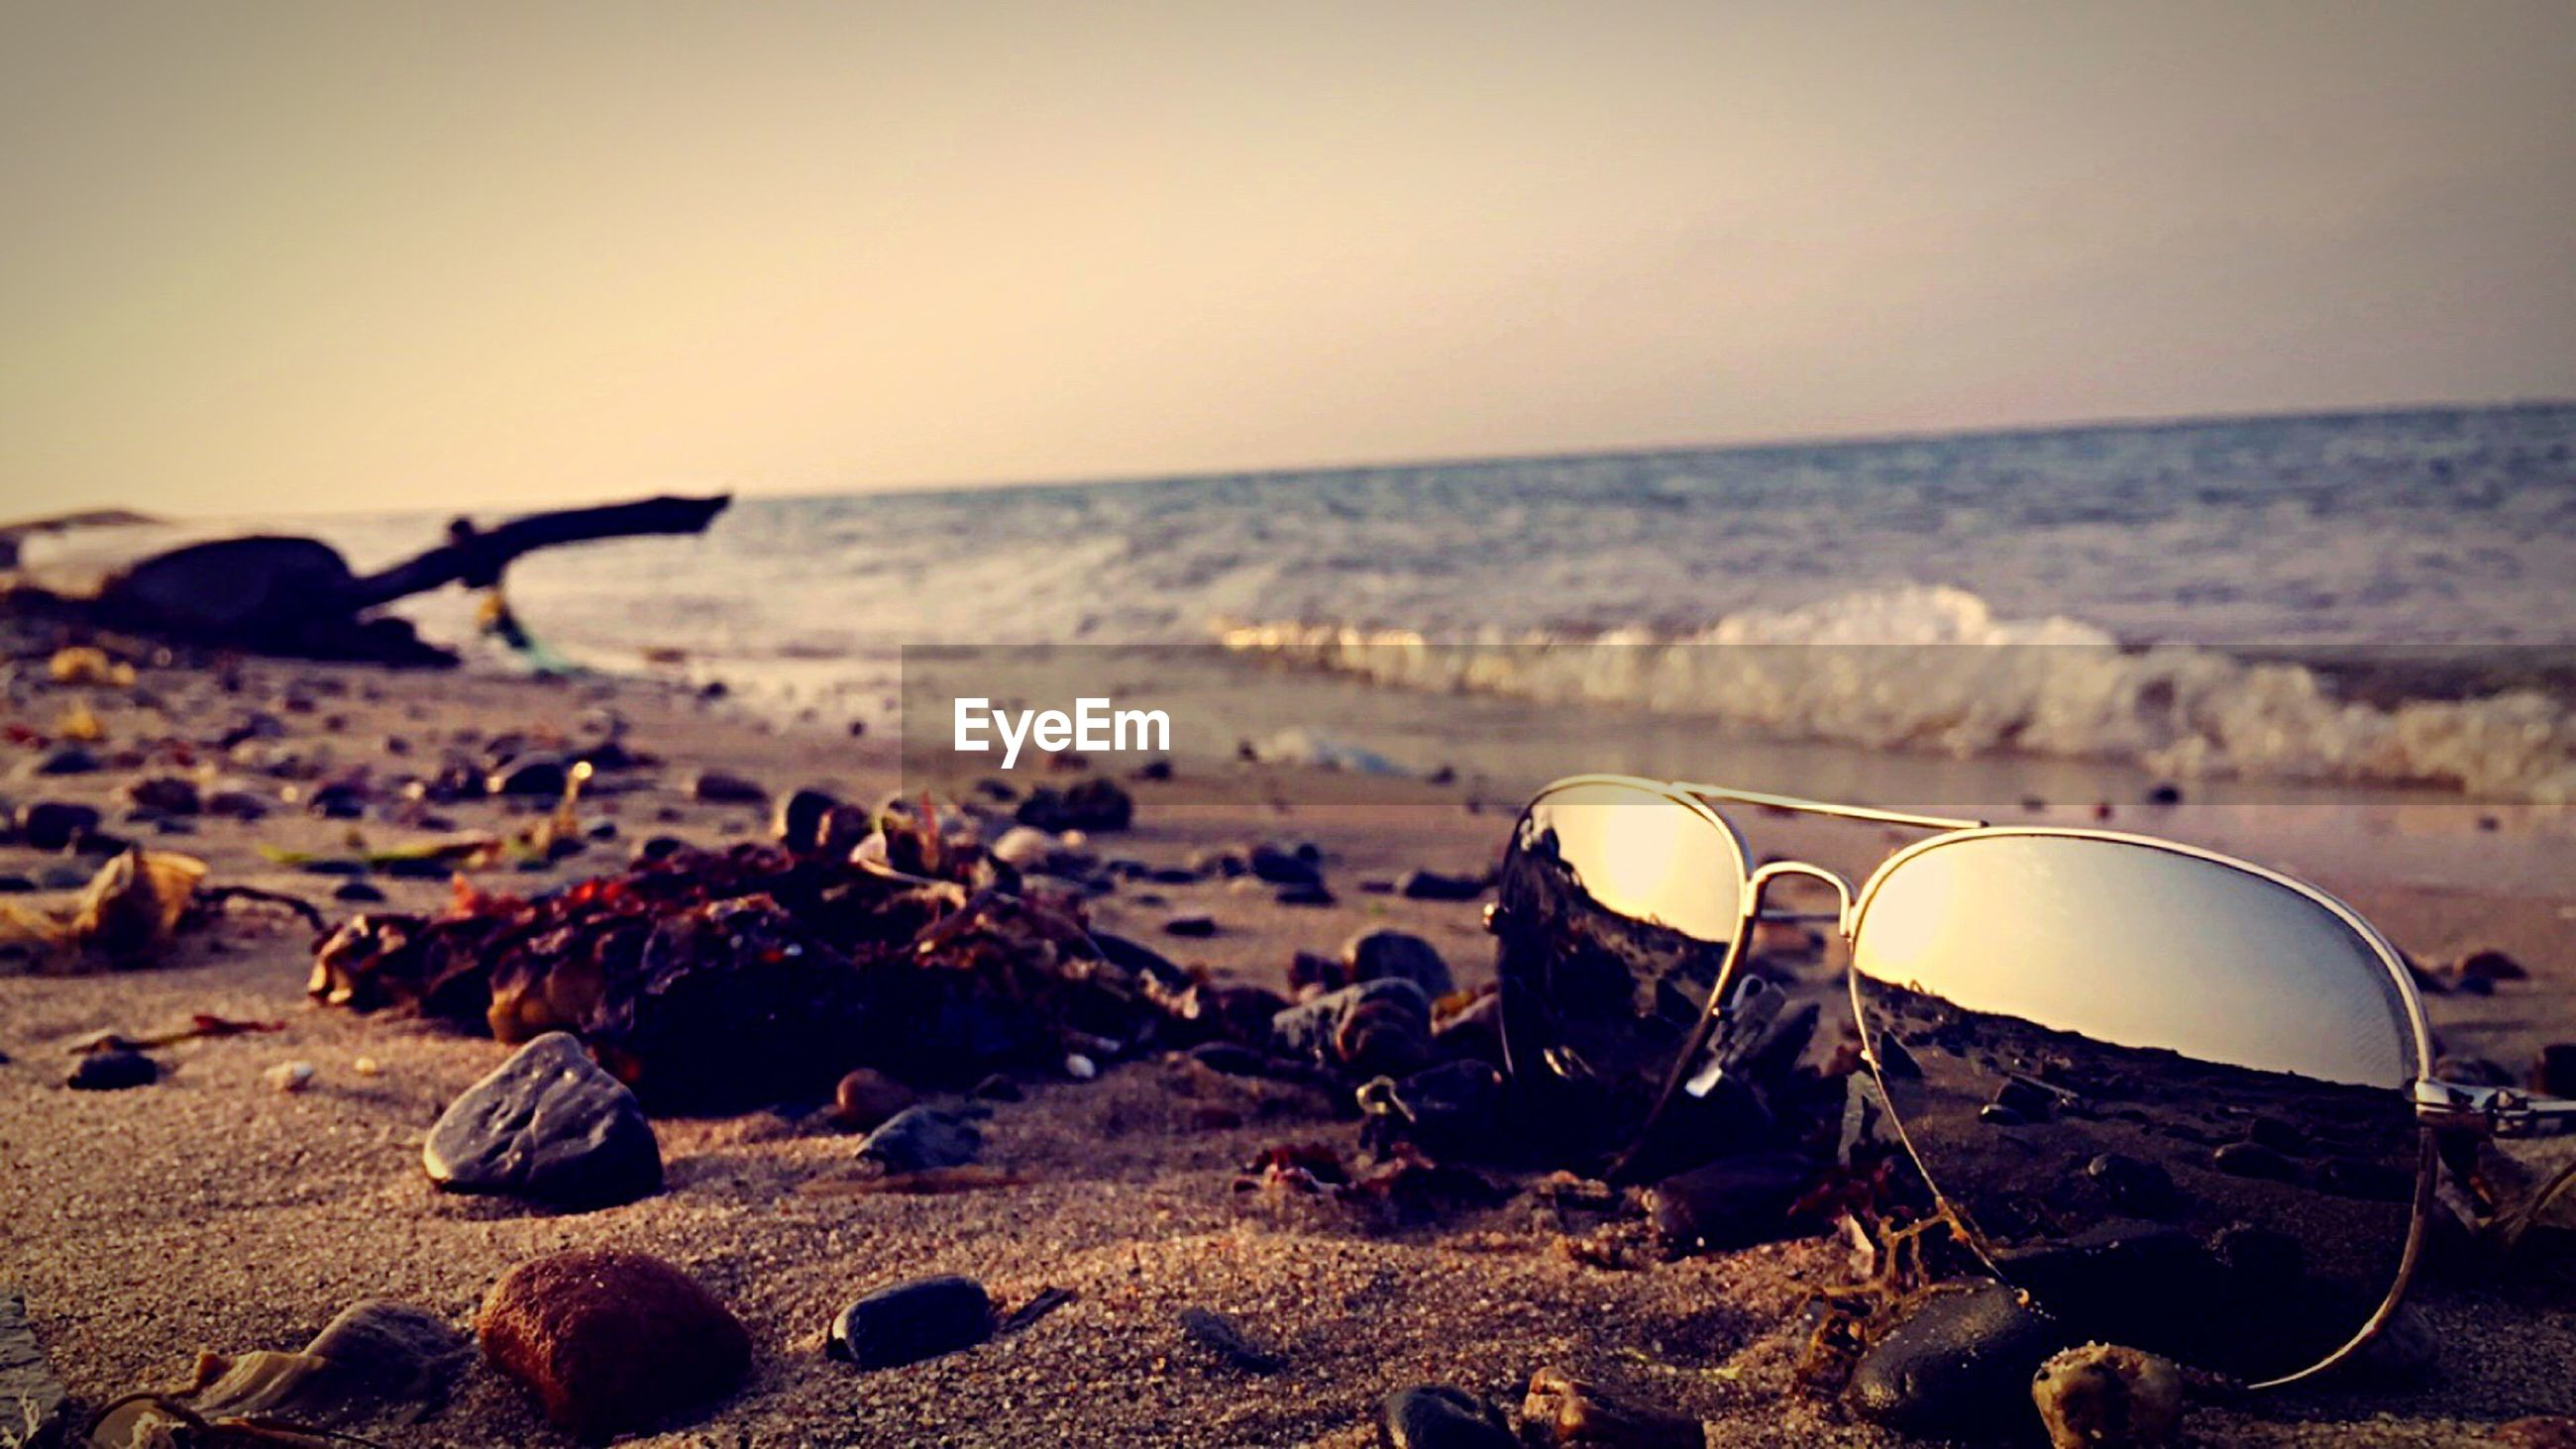 Surface level of sunglasses on sea shore against clear sky during sunset